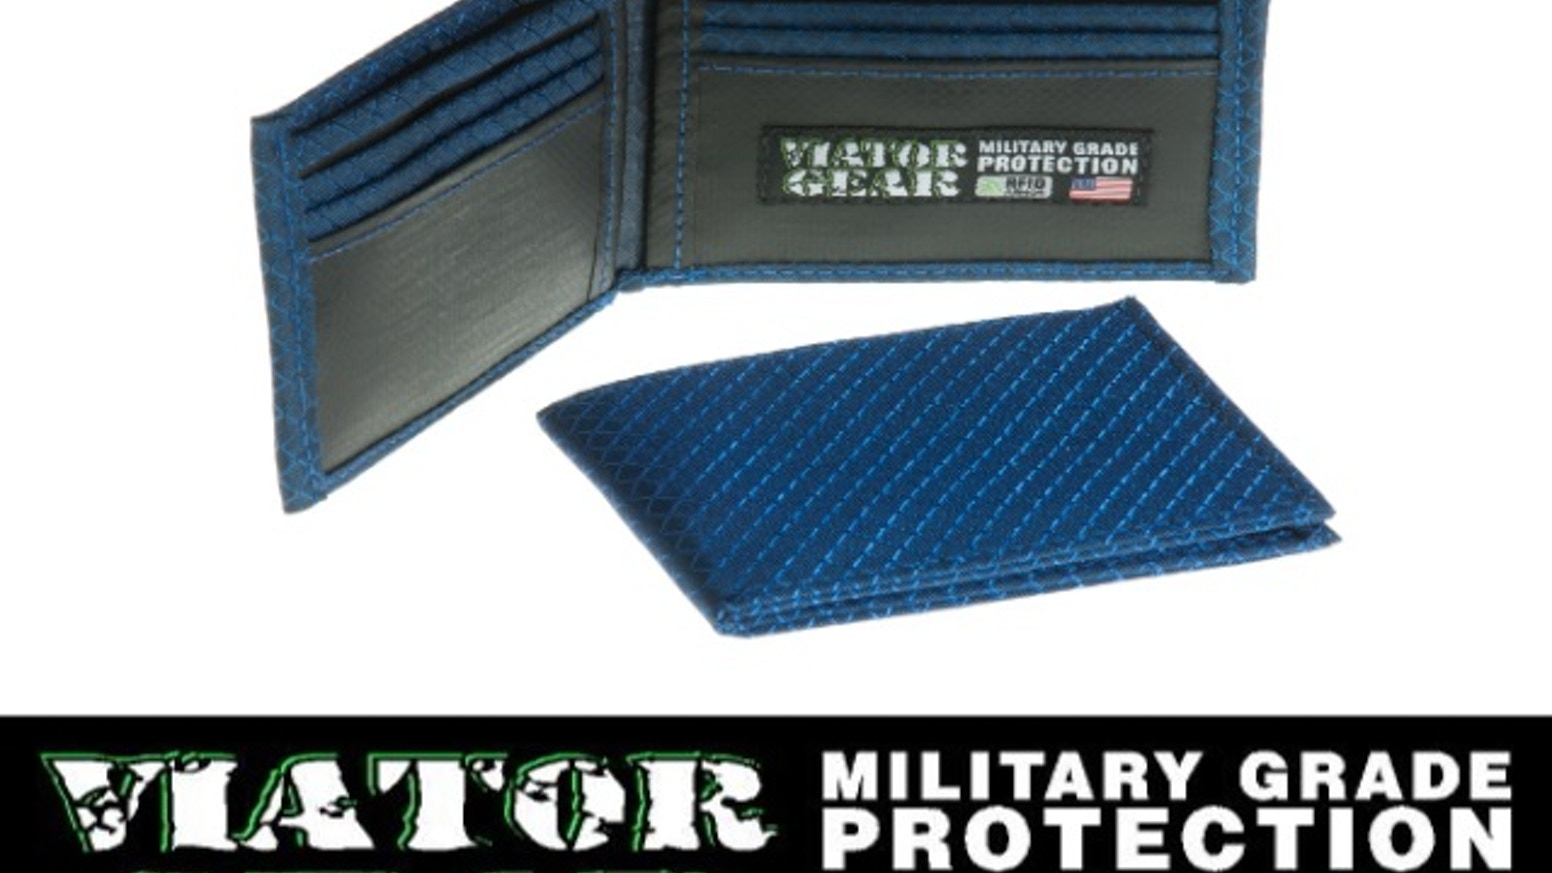 VIATOR GEAR RFID ARMOR Wallet - Made in the USA by VIATOR